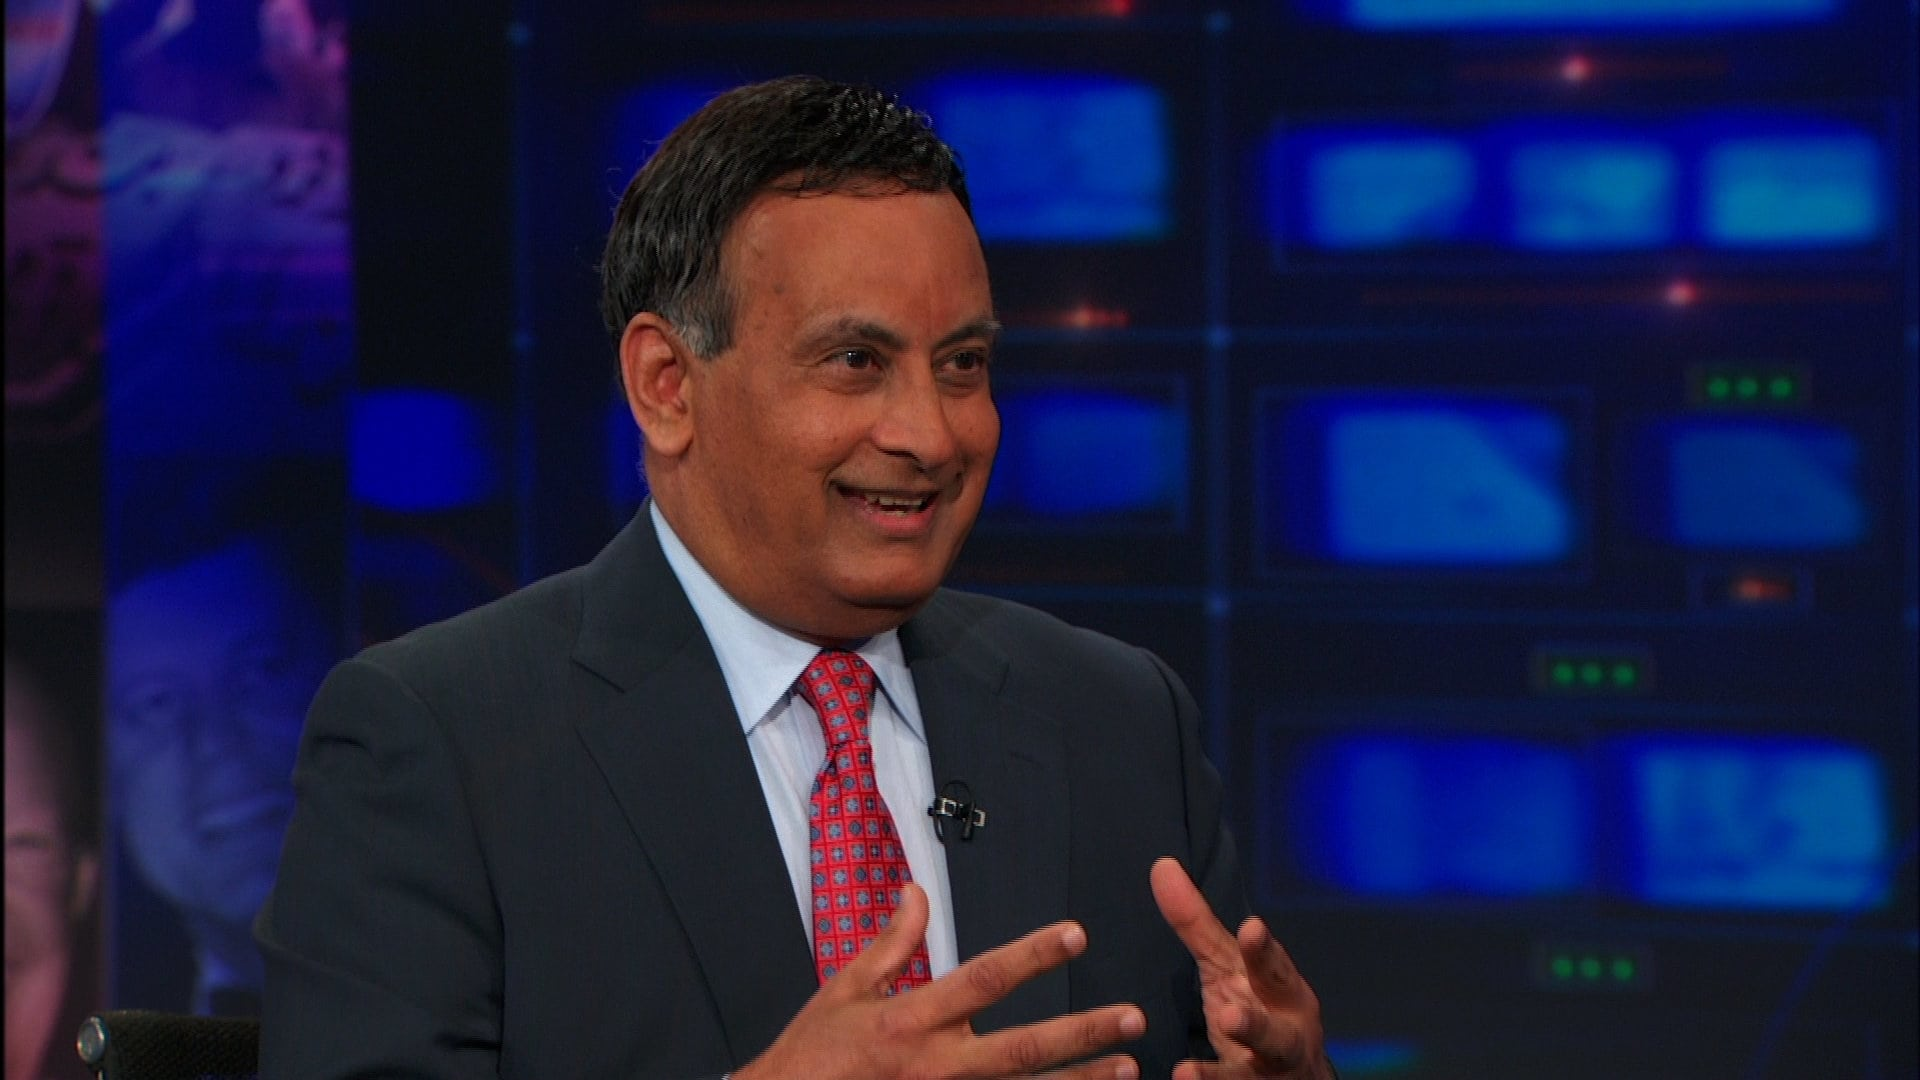 The Daily Show with Trevor Noah Season 19 :Episode 33  Husain Haqqani